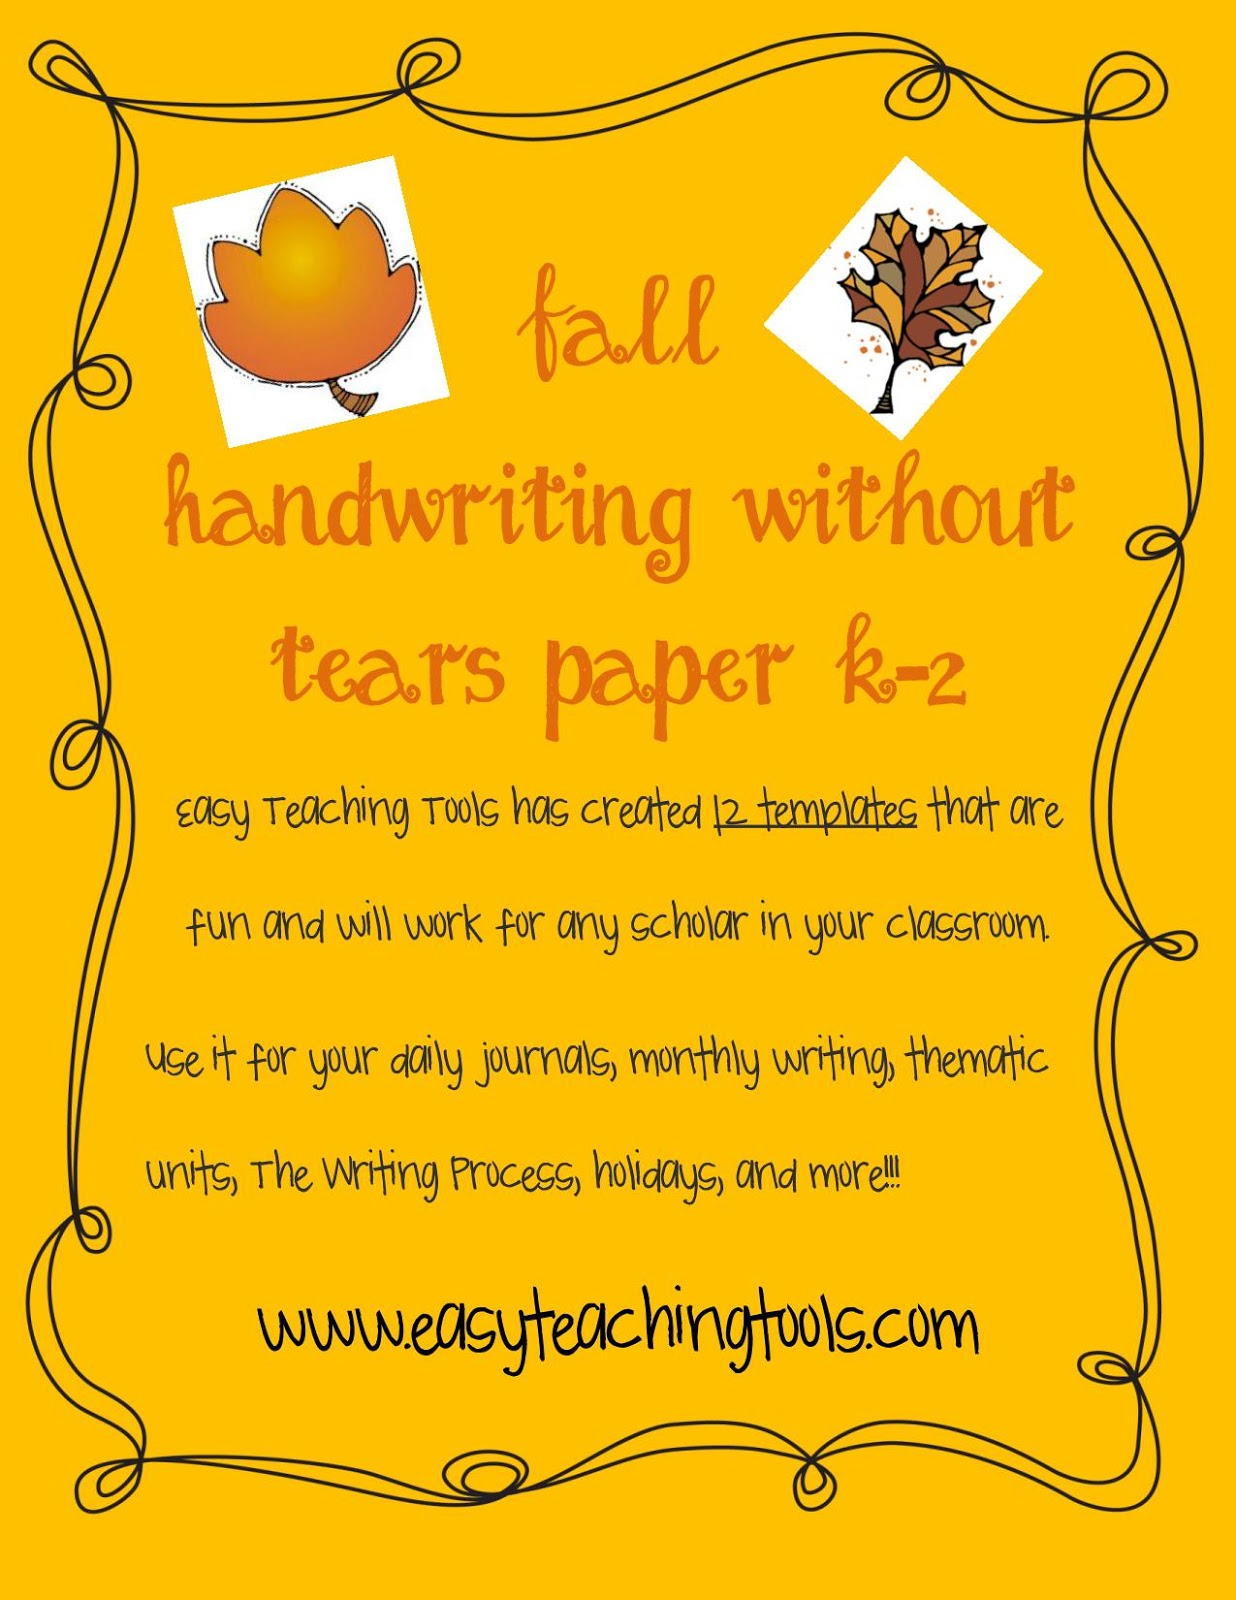 Worksheet Handwriting Without Tears